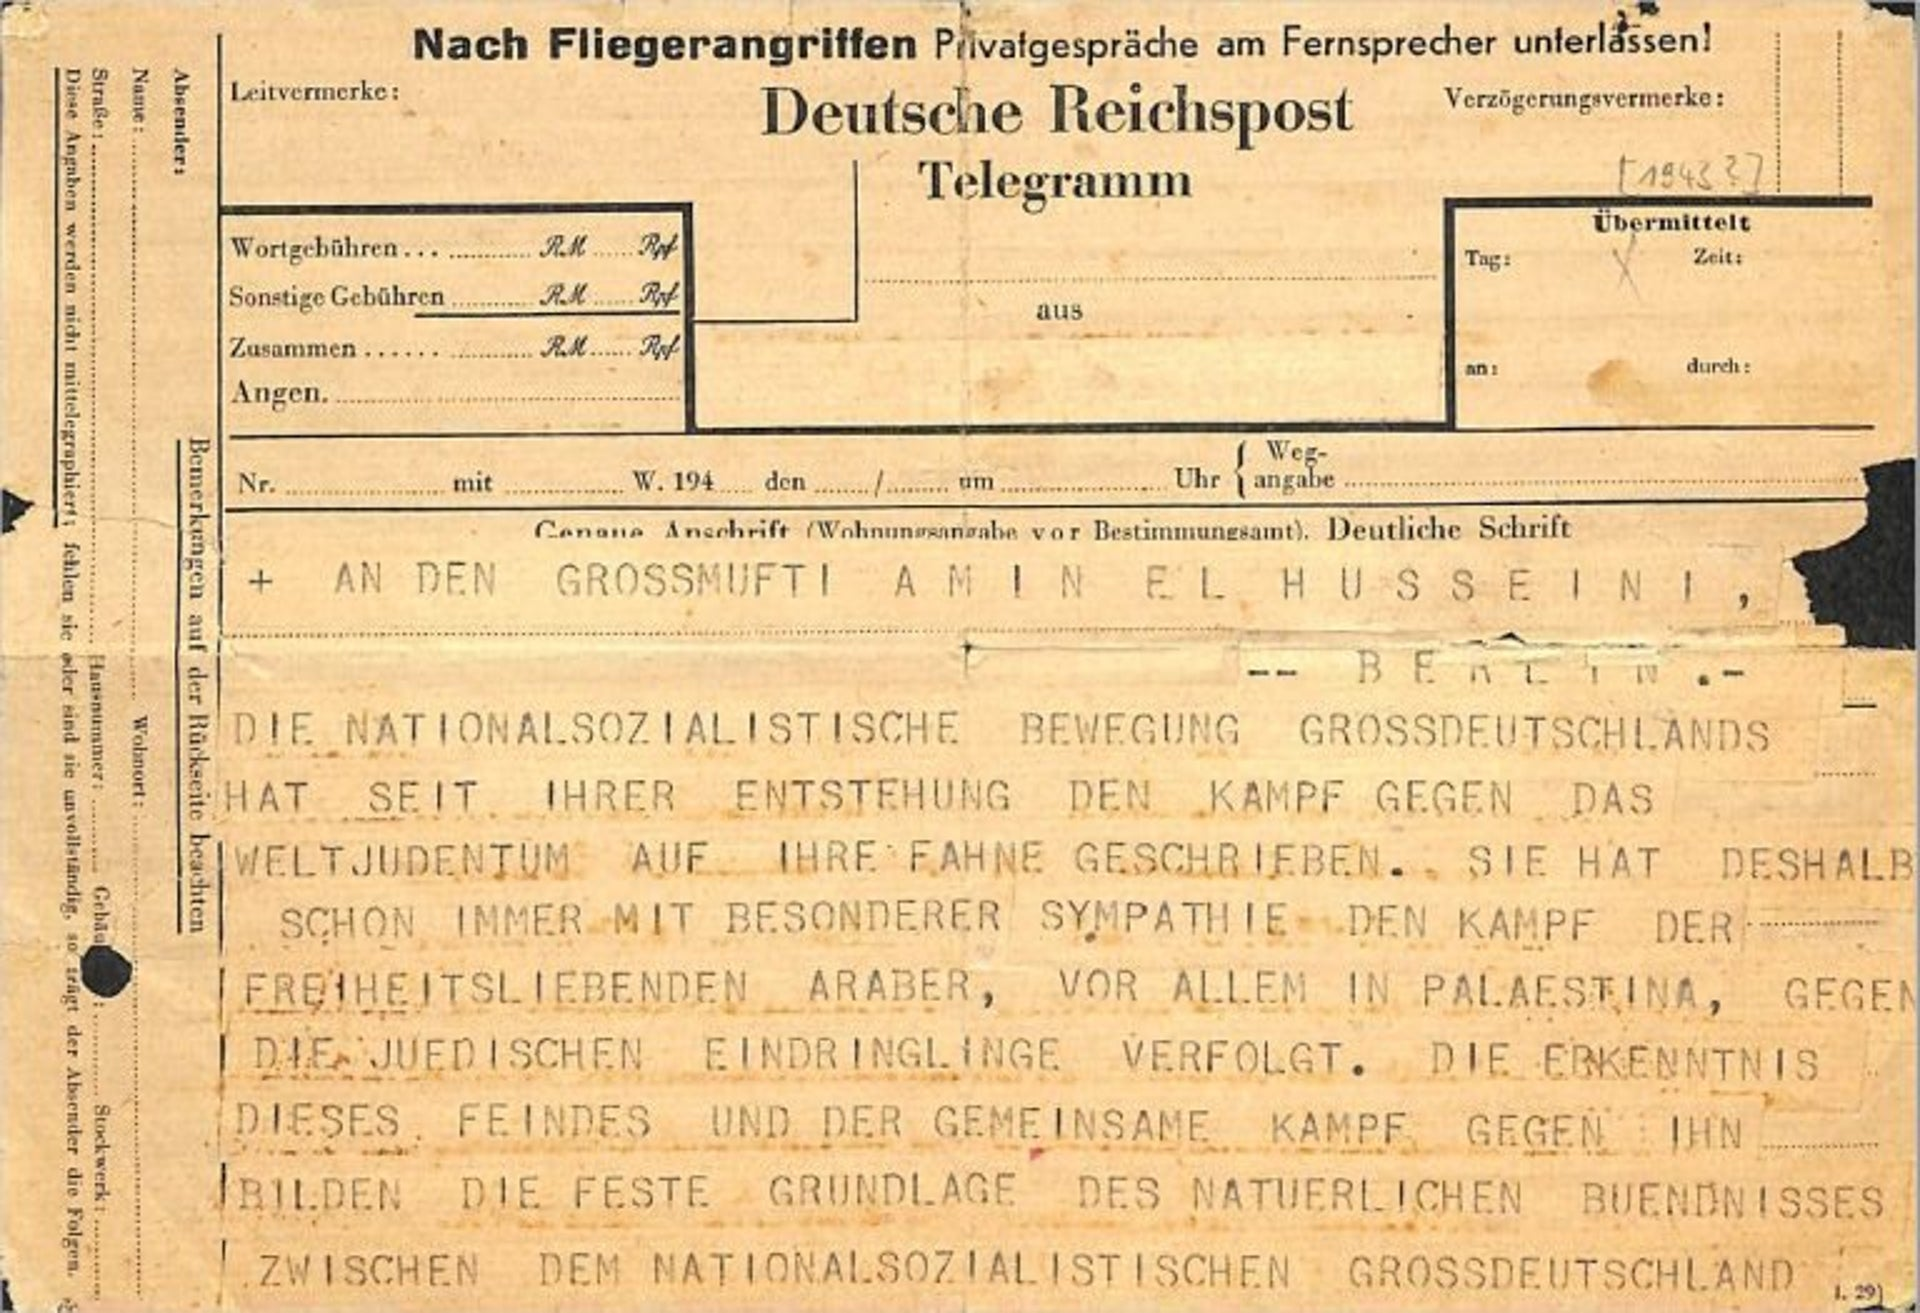 The telegram from S.S. head Heinrich Himmler to Mufti Haj Amin al-Husseini, sent to mark the 26th anniversary of the Balfour Declaration in 1943.